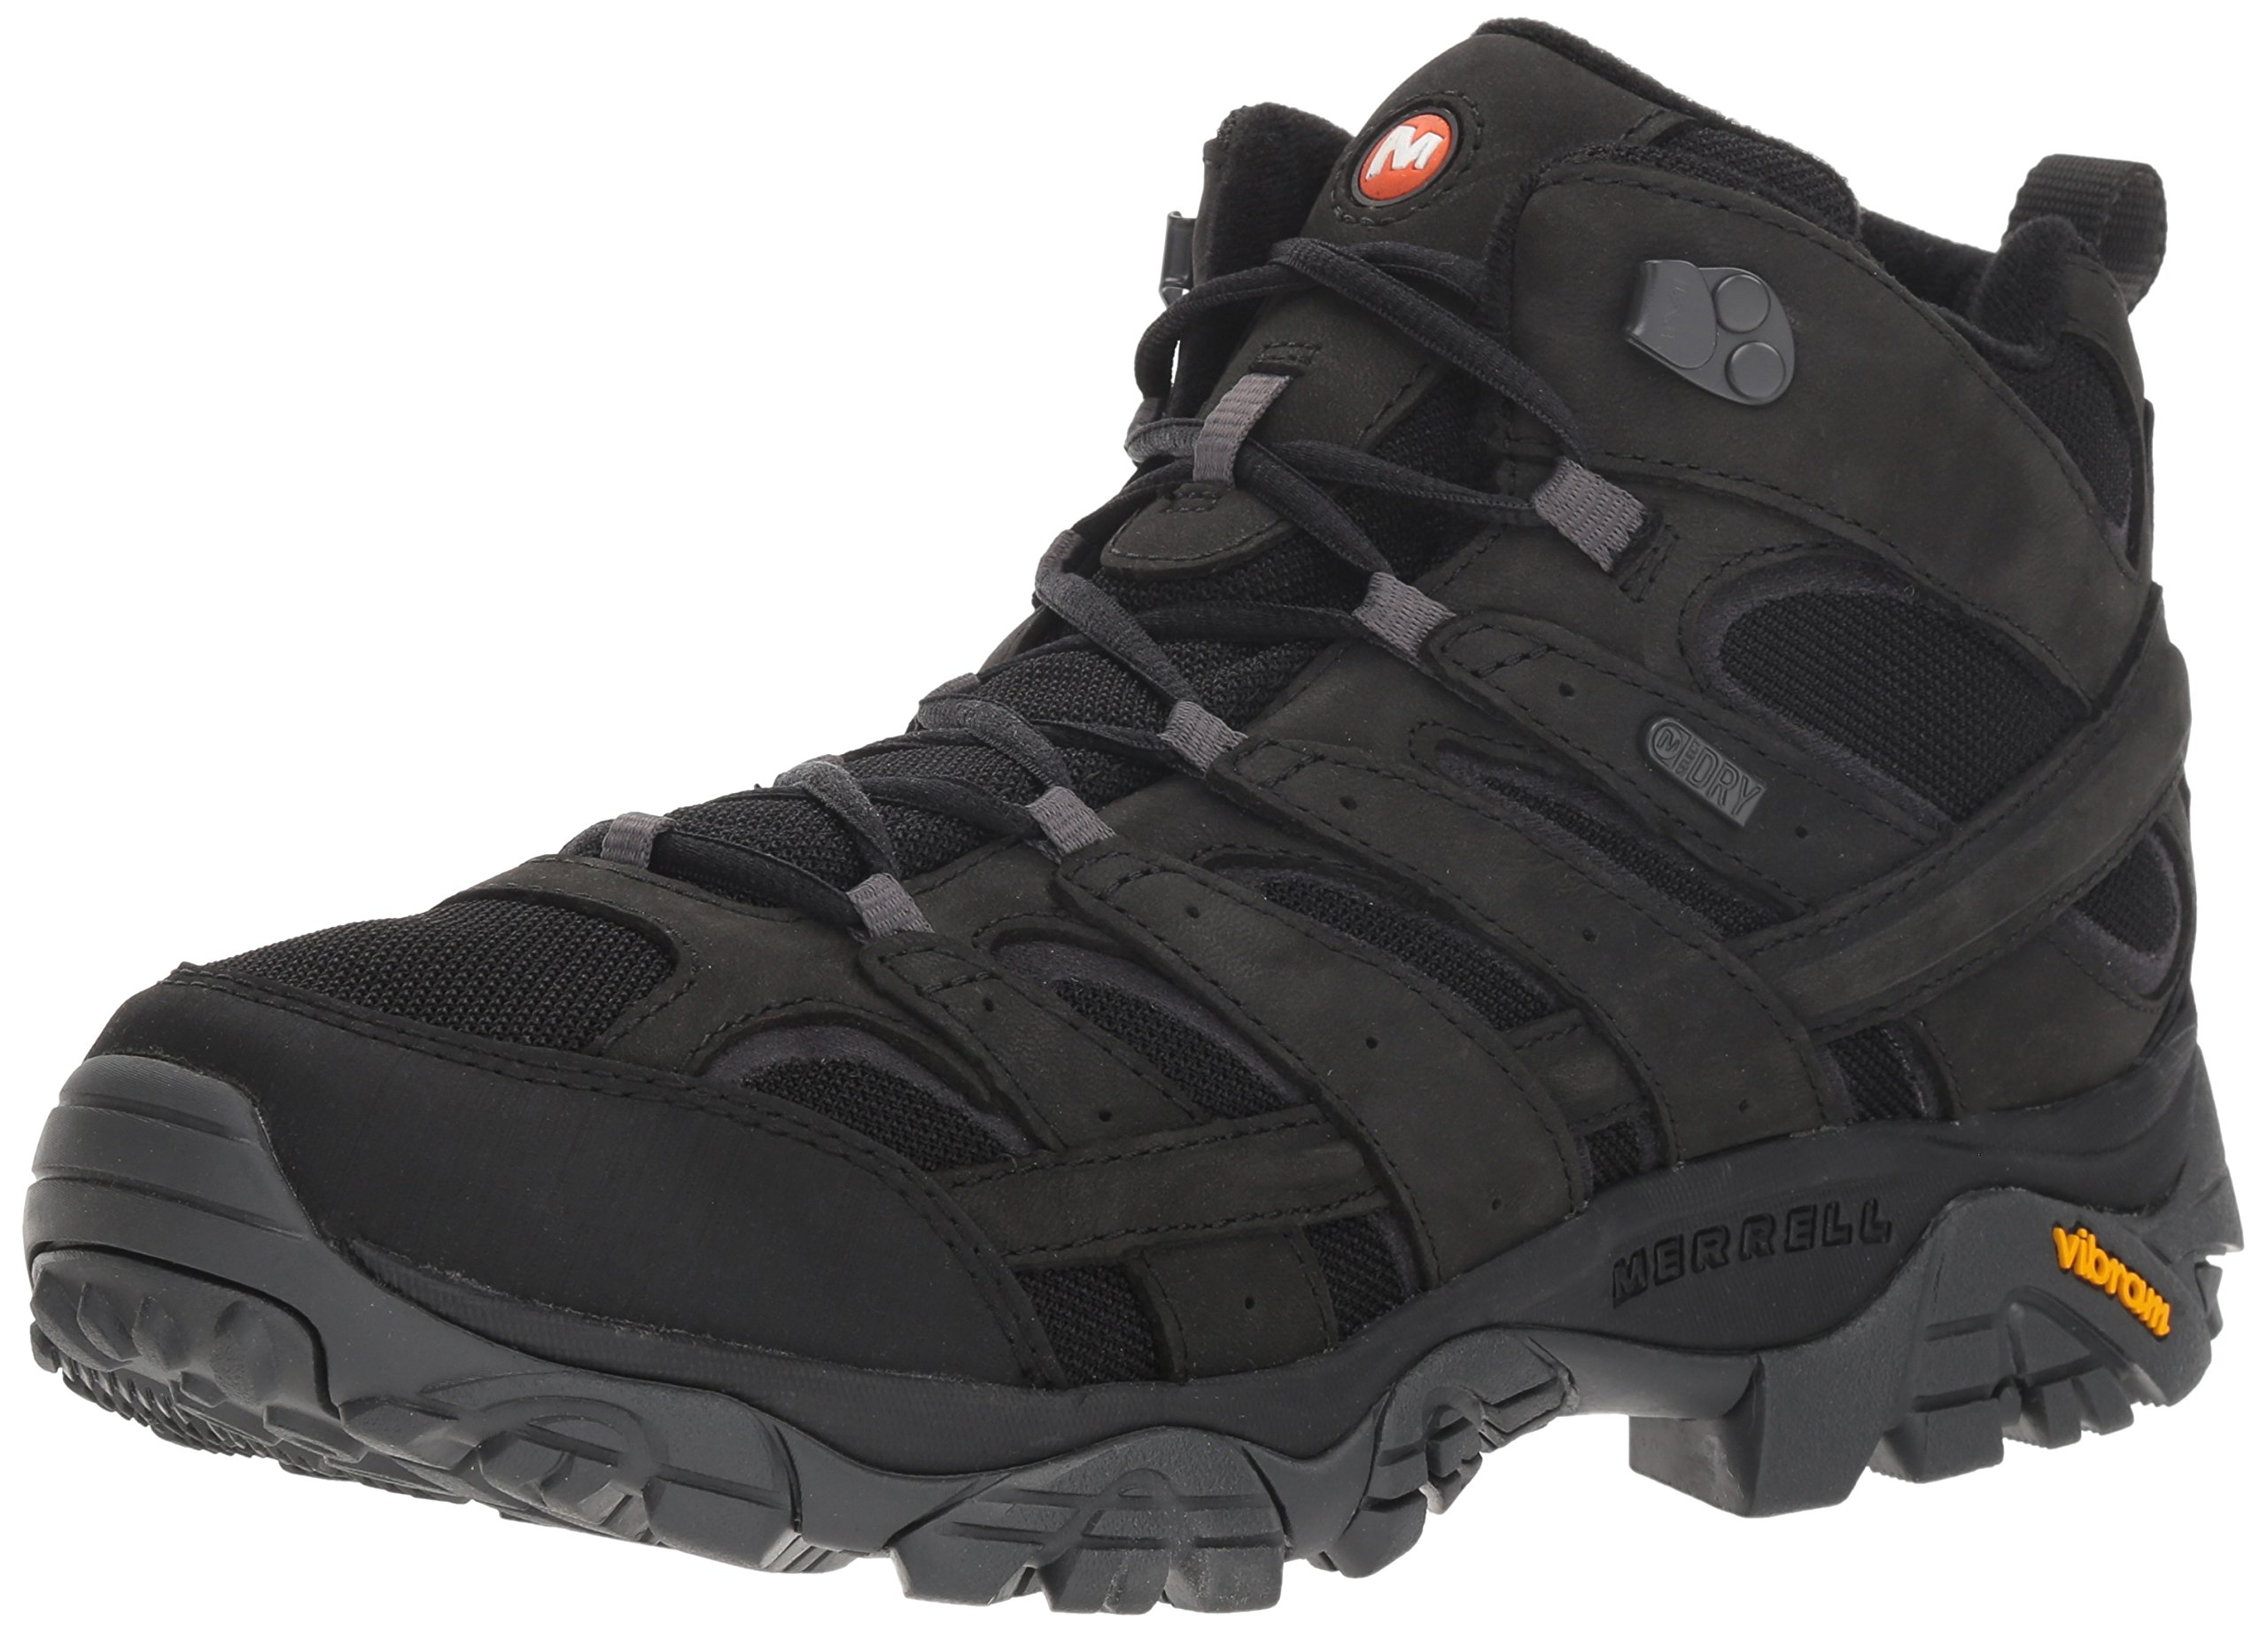 Merrell Men's Moab 2 Smooth MID Waterproof Hiking Boot, Black, 7.5 M US